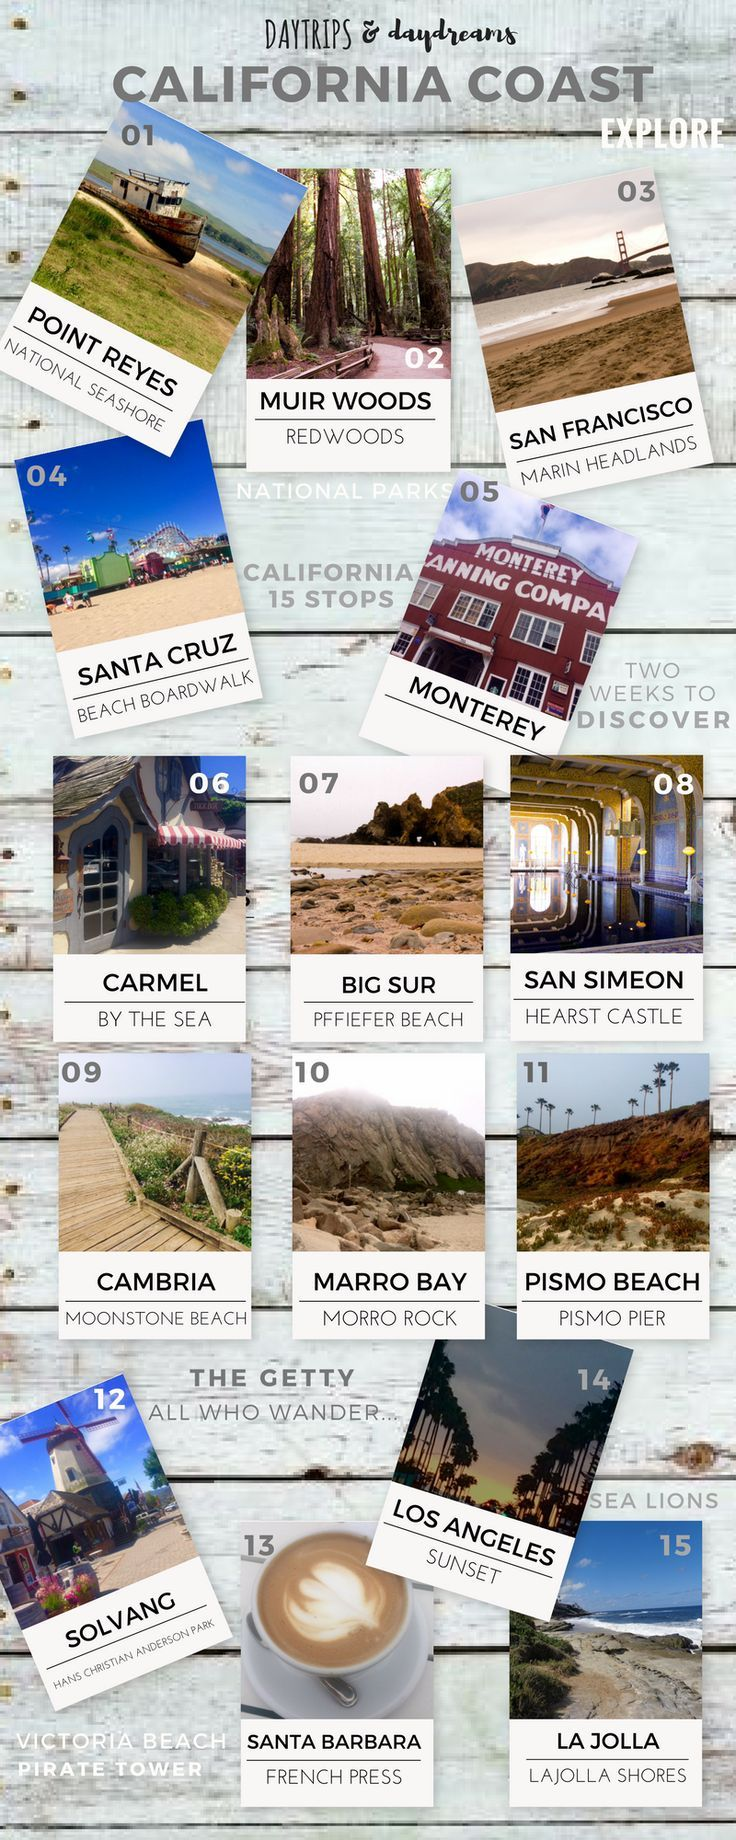 San Francisco Road Map Pdf%0A California Coast Map and Itinerary     stops down the coast from San  Francisco to LaJolla